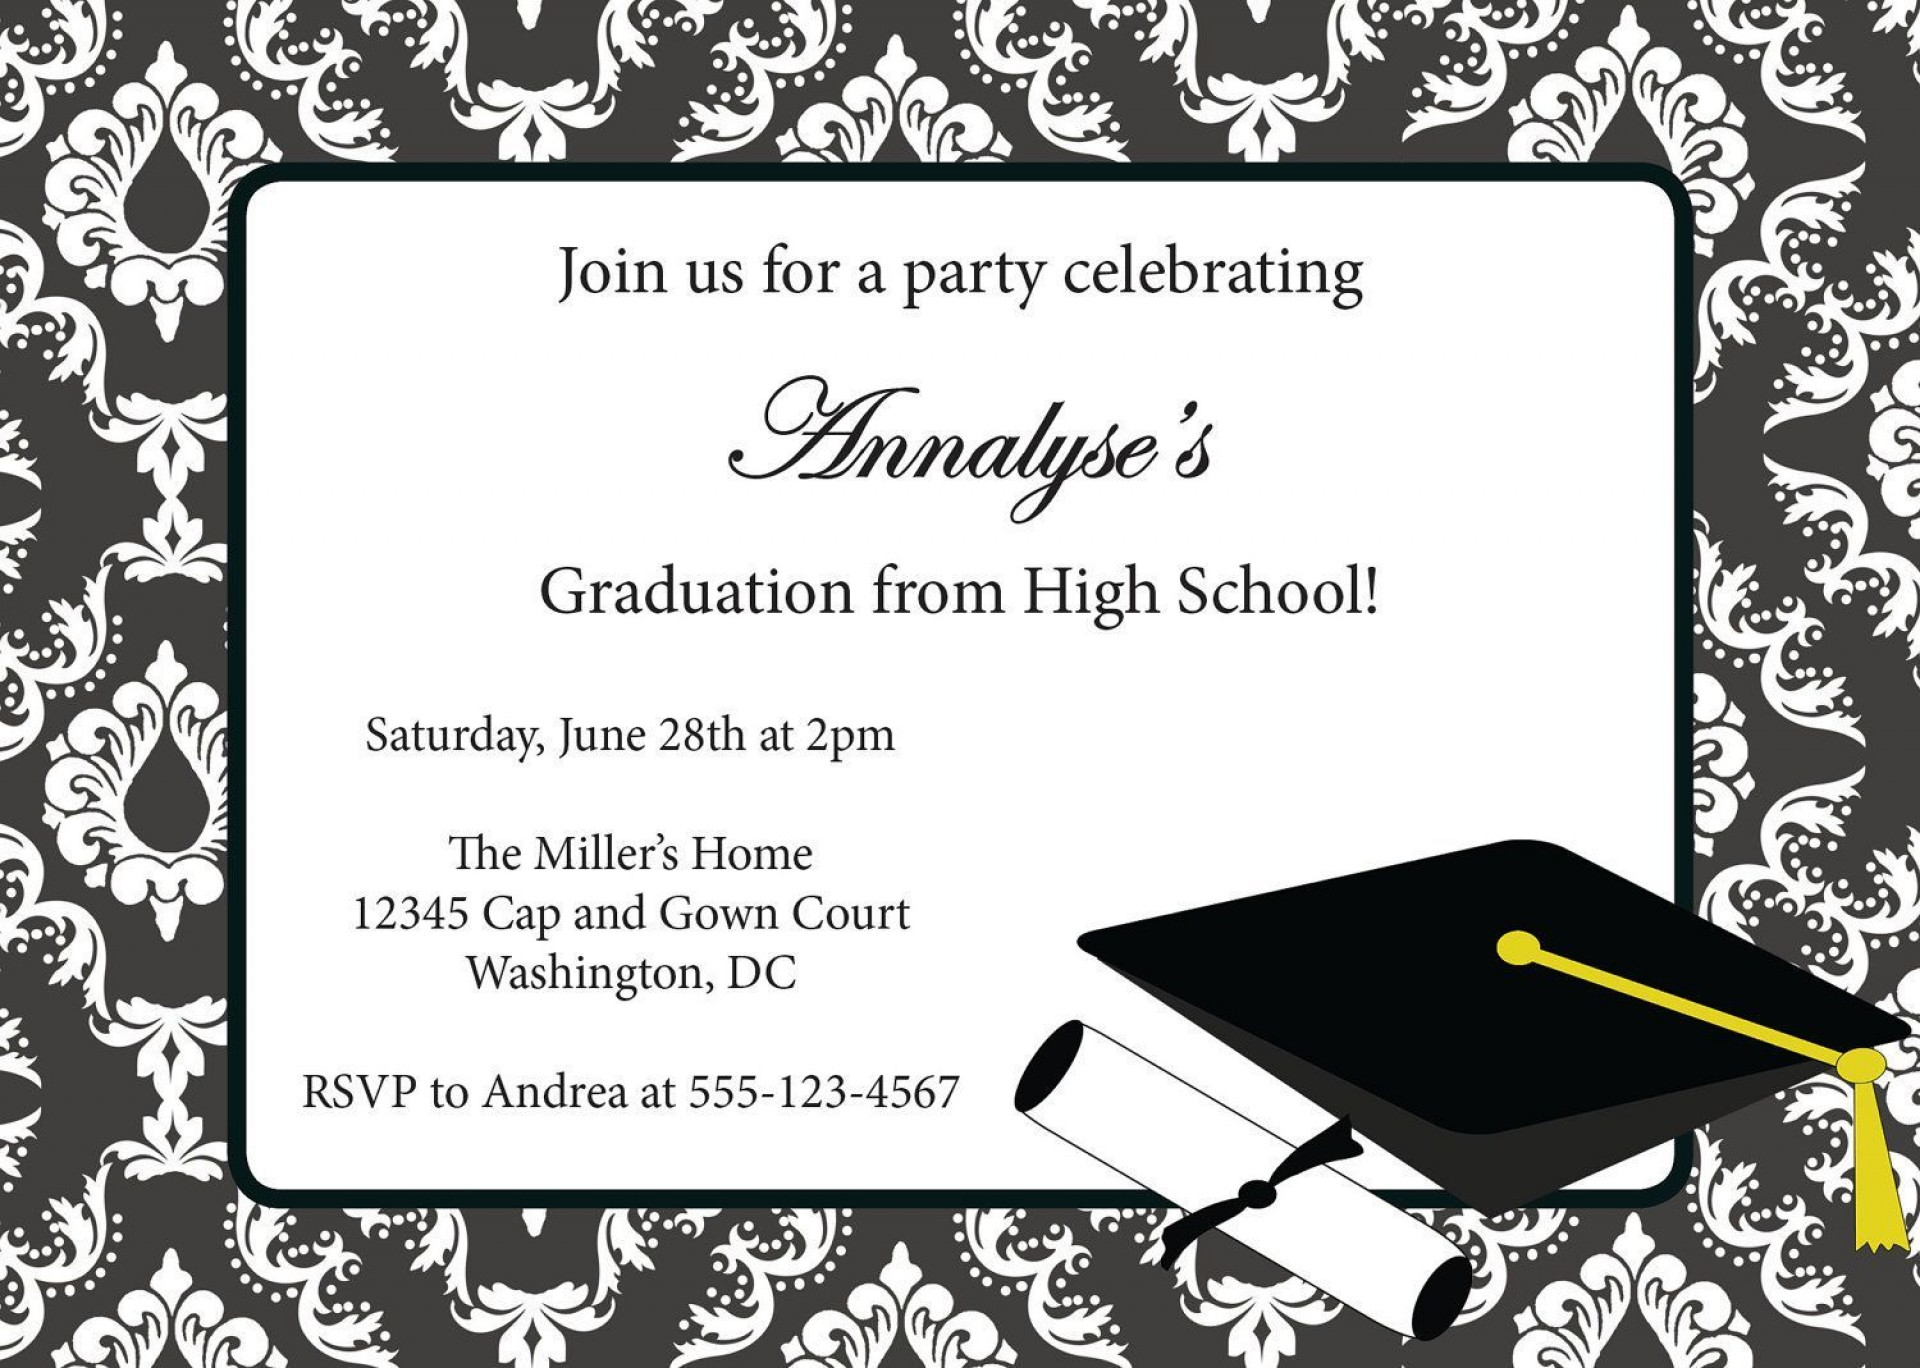 002 Amazing College Graduation Invitation Template Sample  Templates Free Party1920